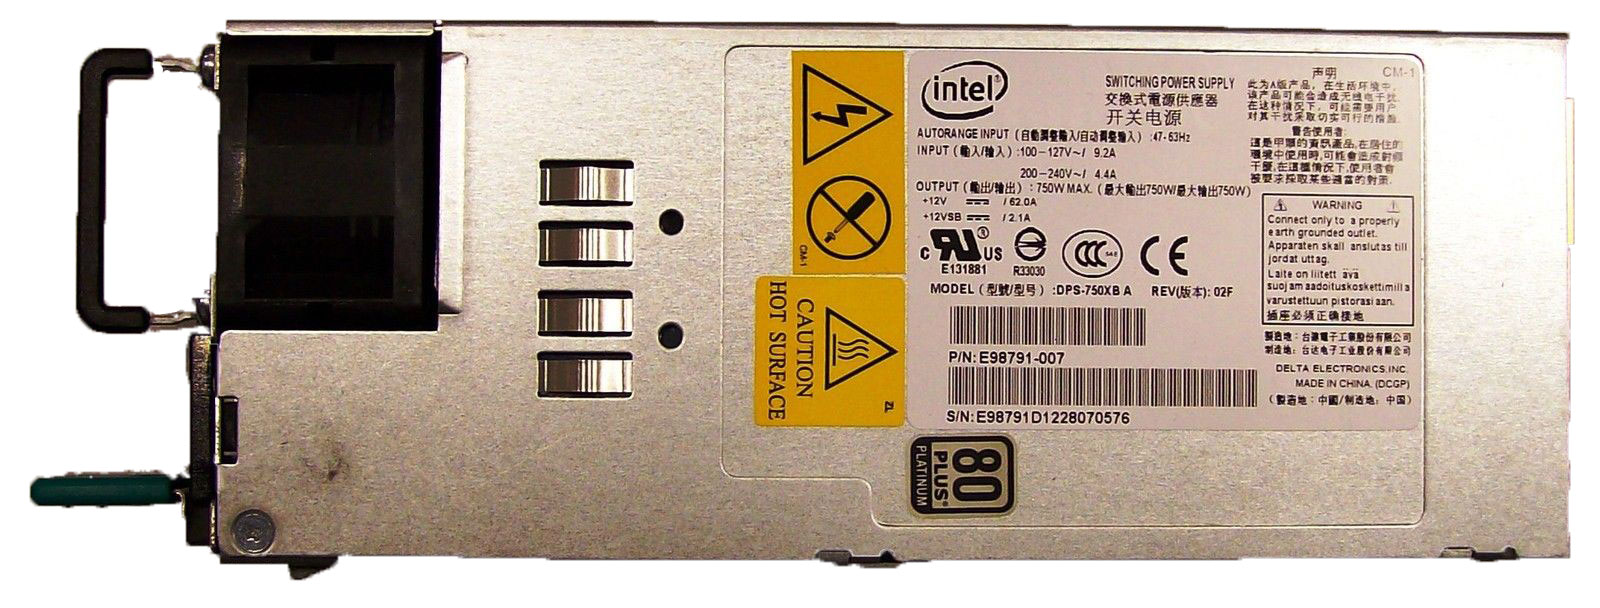 Intel DPS-750XB A 750 Watt Hot Swap Power Supply Module